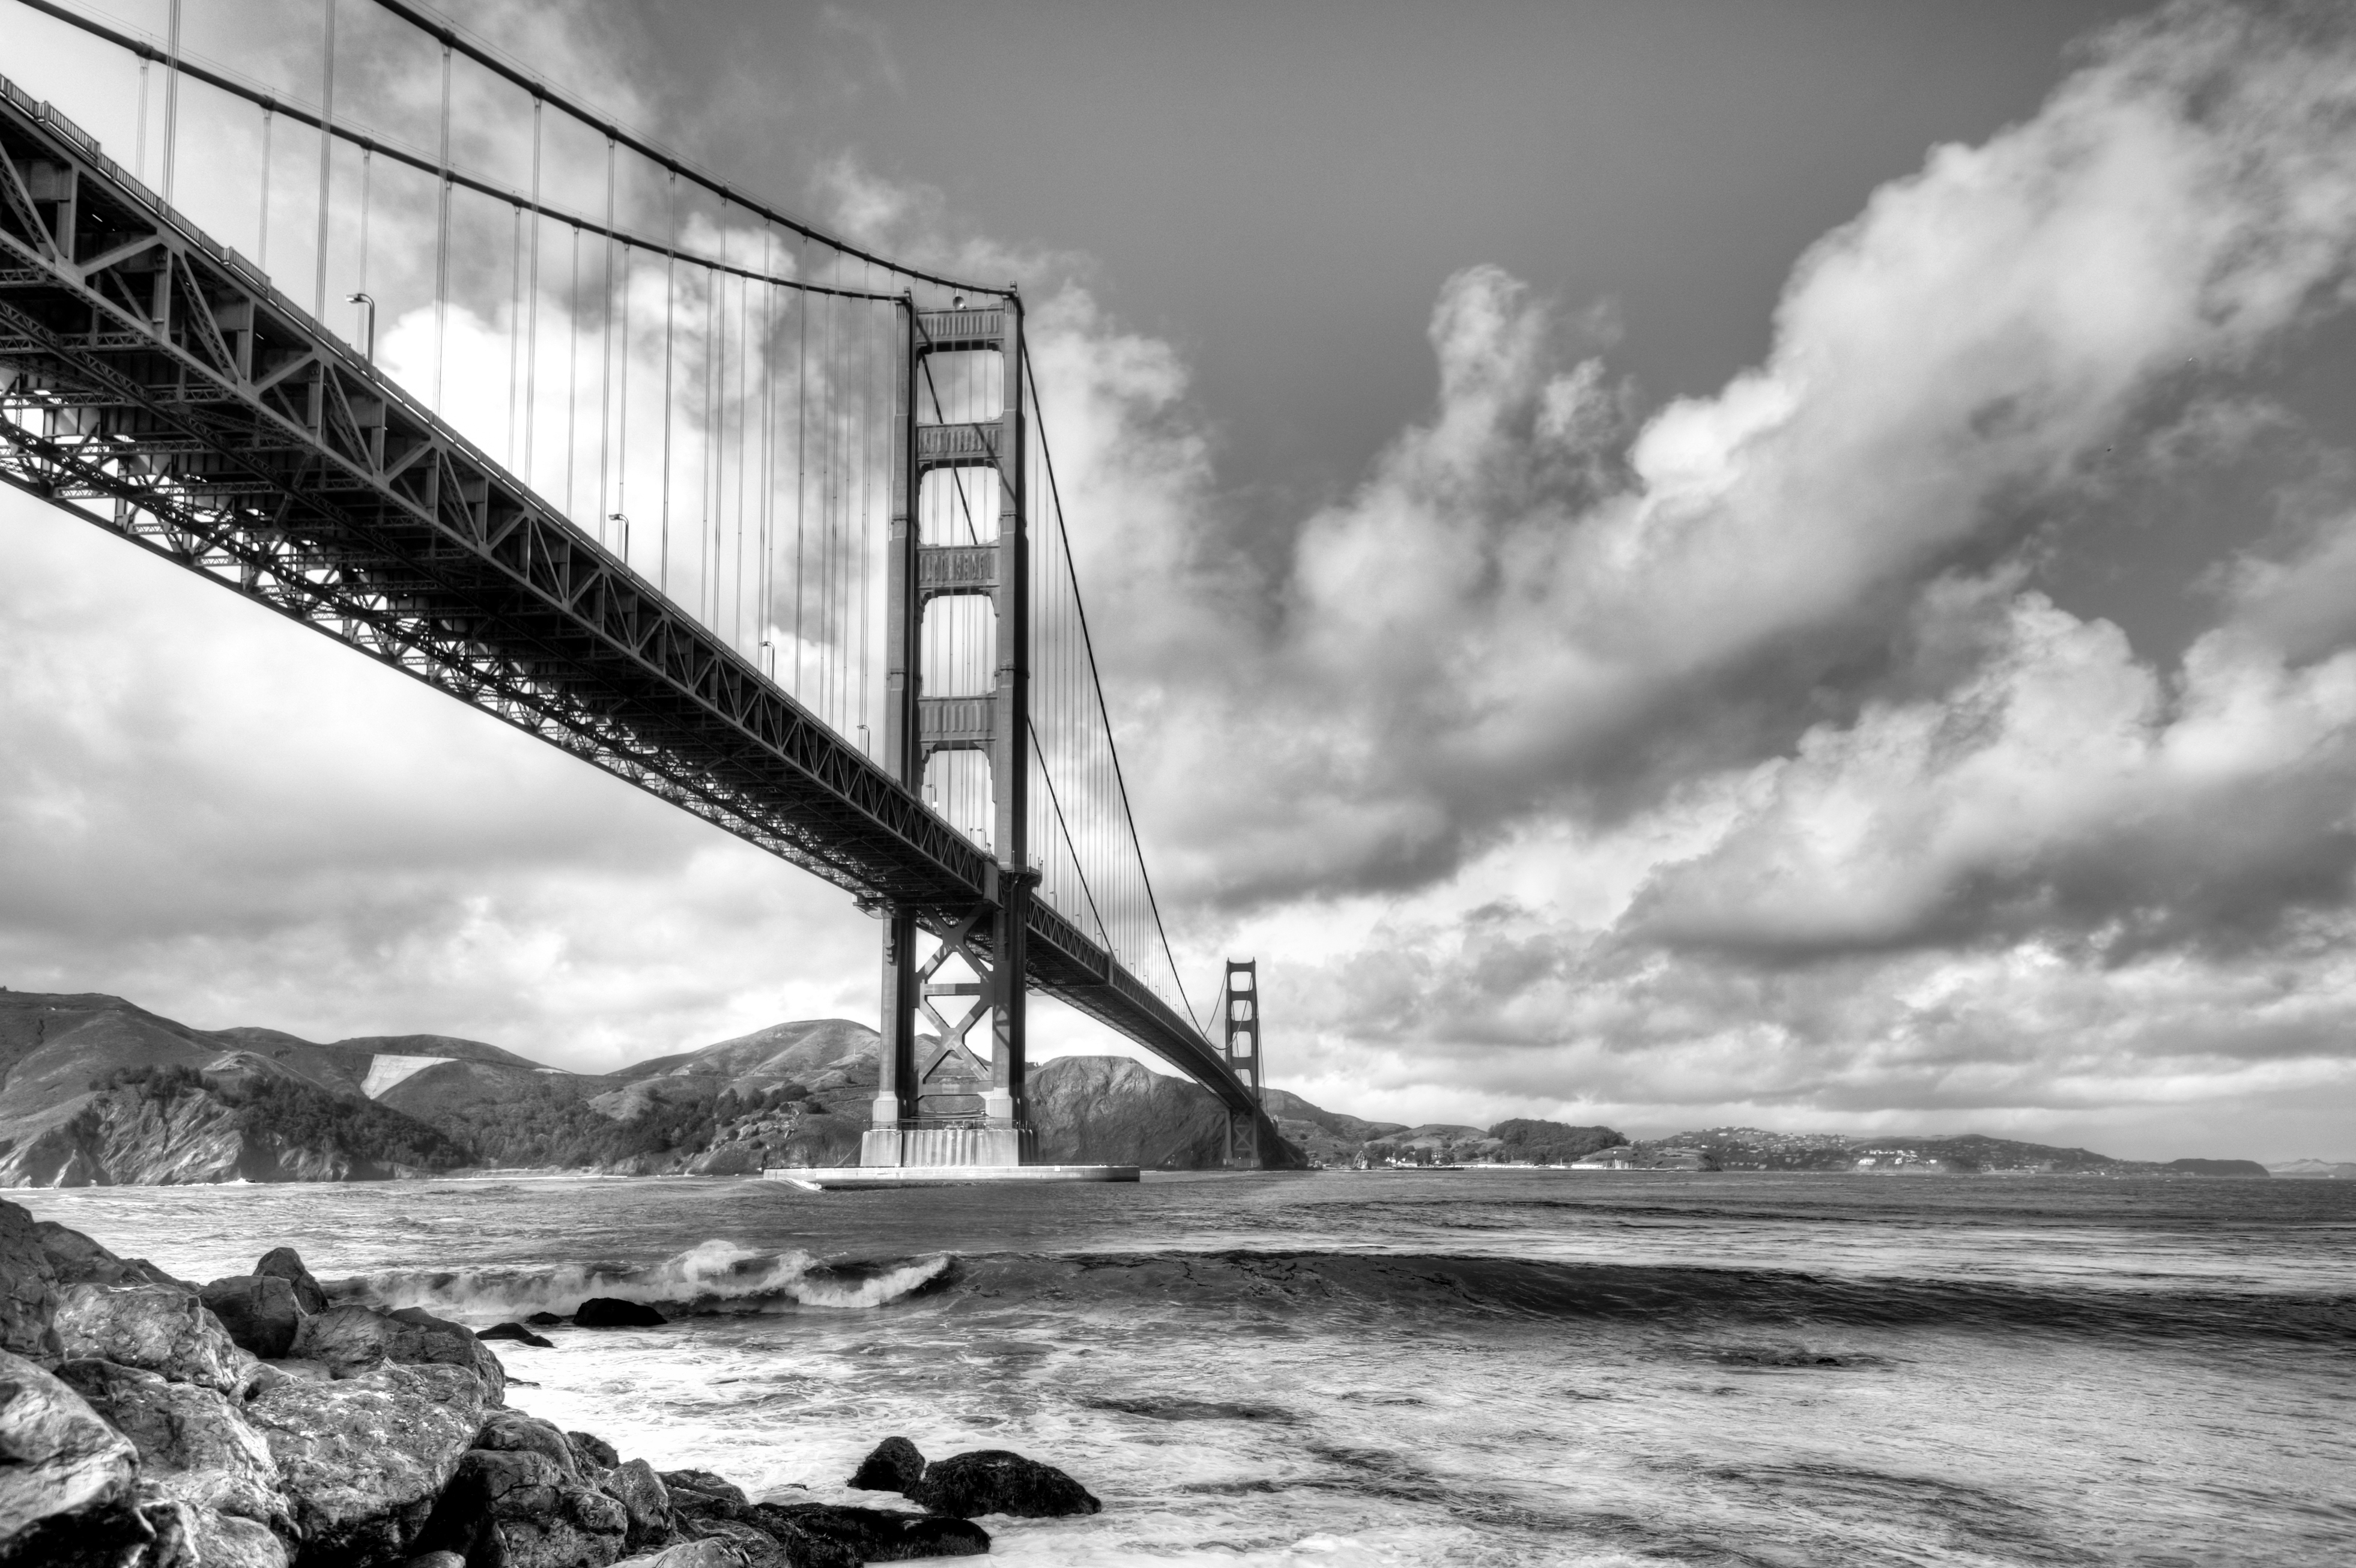 goldens bridge black singles On this date in 1937, san francisco's golden gate bridge opened to the public here are a few things you might not have known about the oft-photographed structure in 1920, o'shaughnessy.